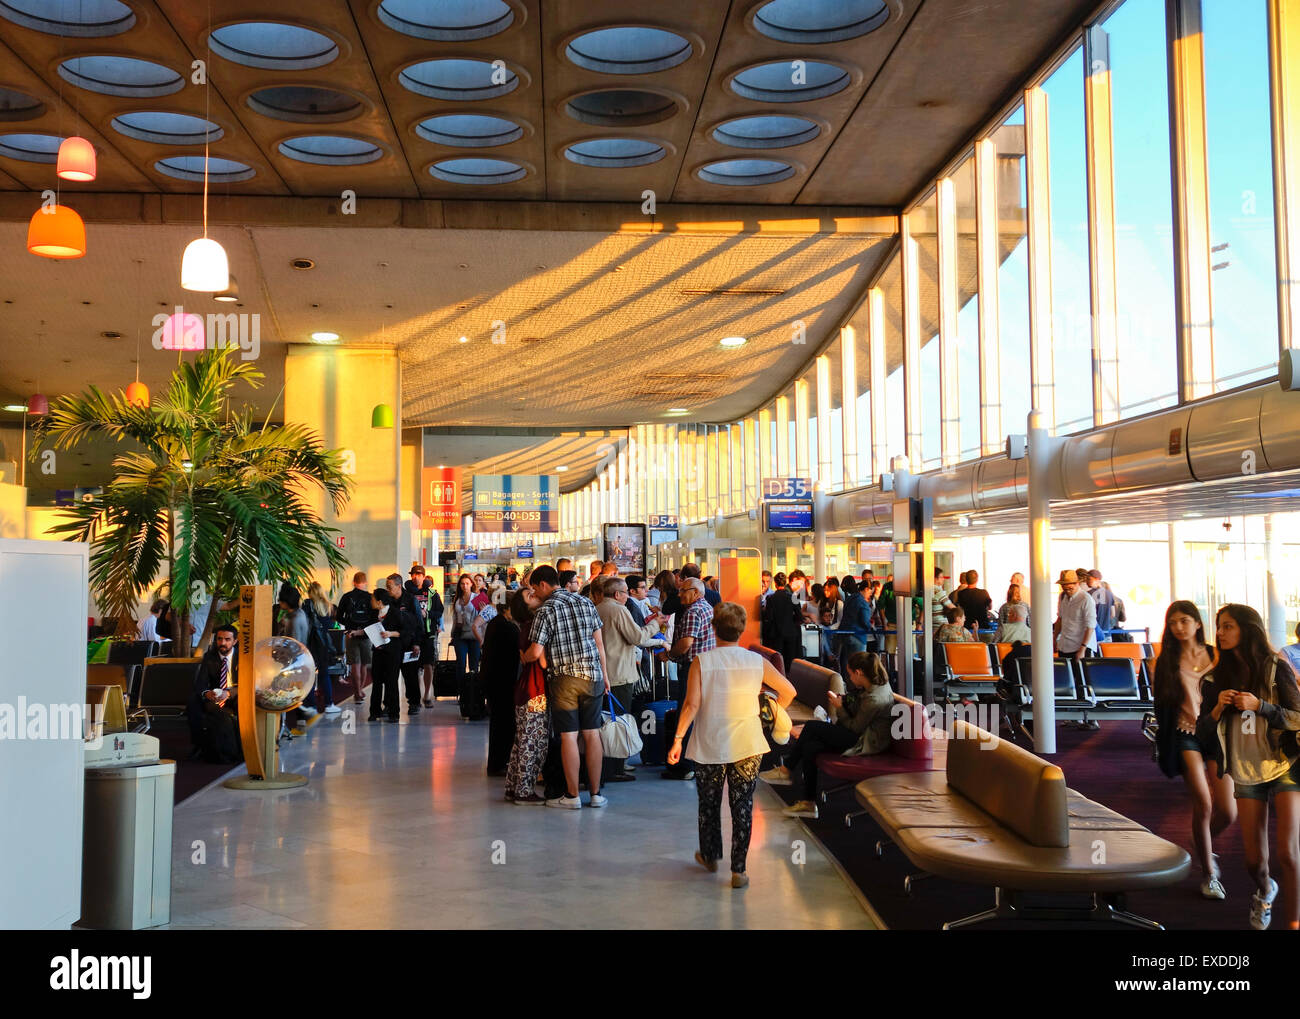 Terminal 2d Gates, passengers waiting to board plane at Charles de Gaulle, airport, Paris, France. - Stock Image